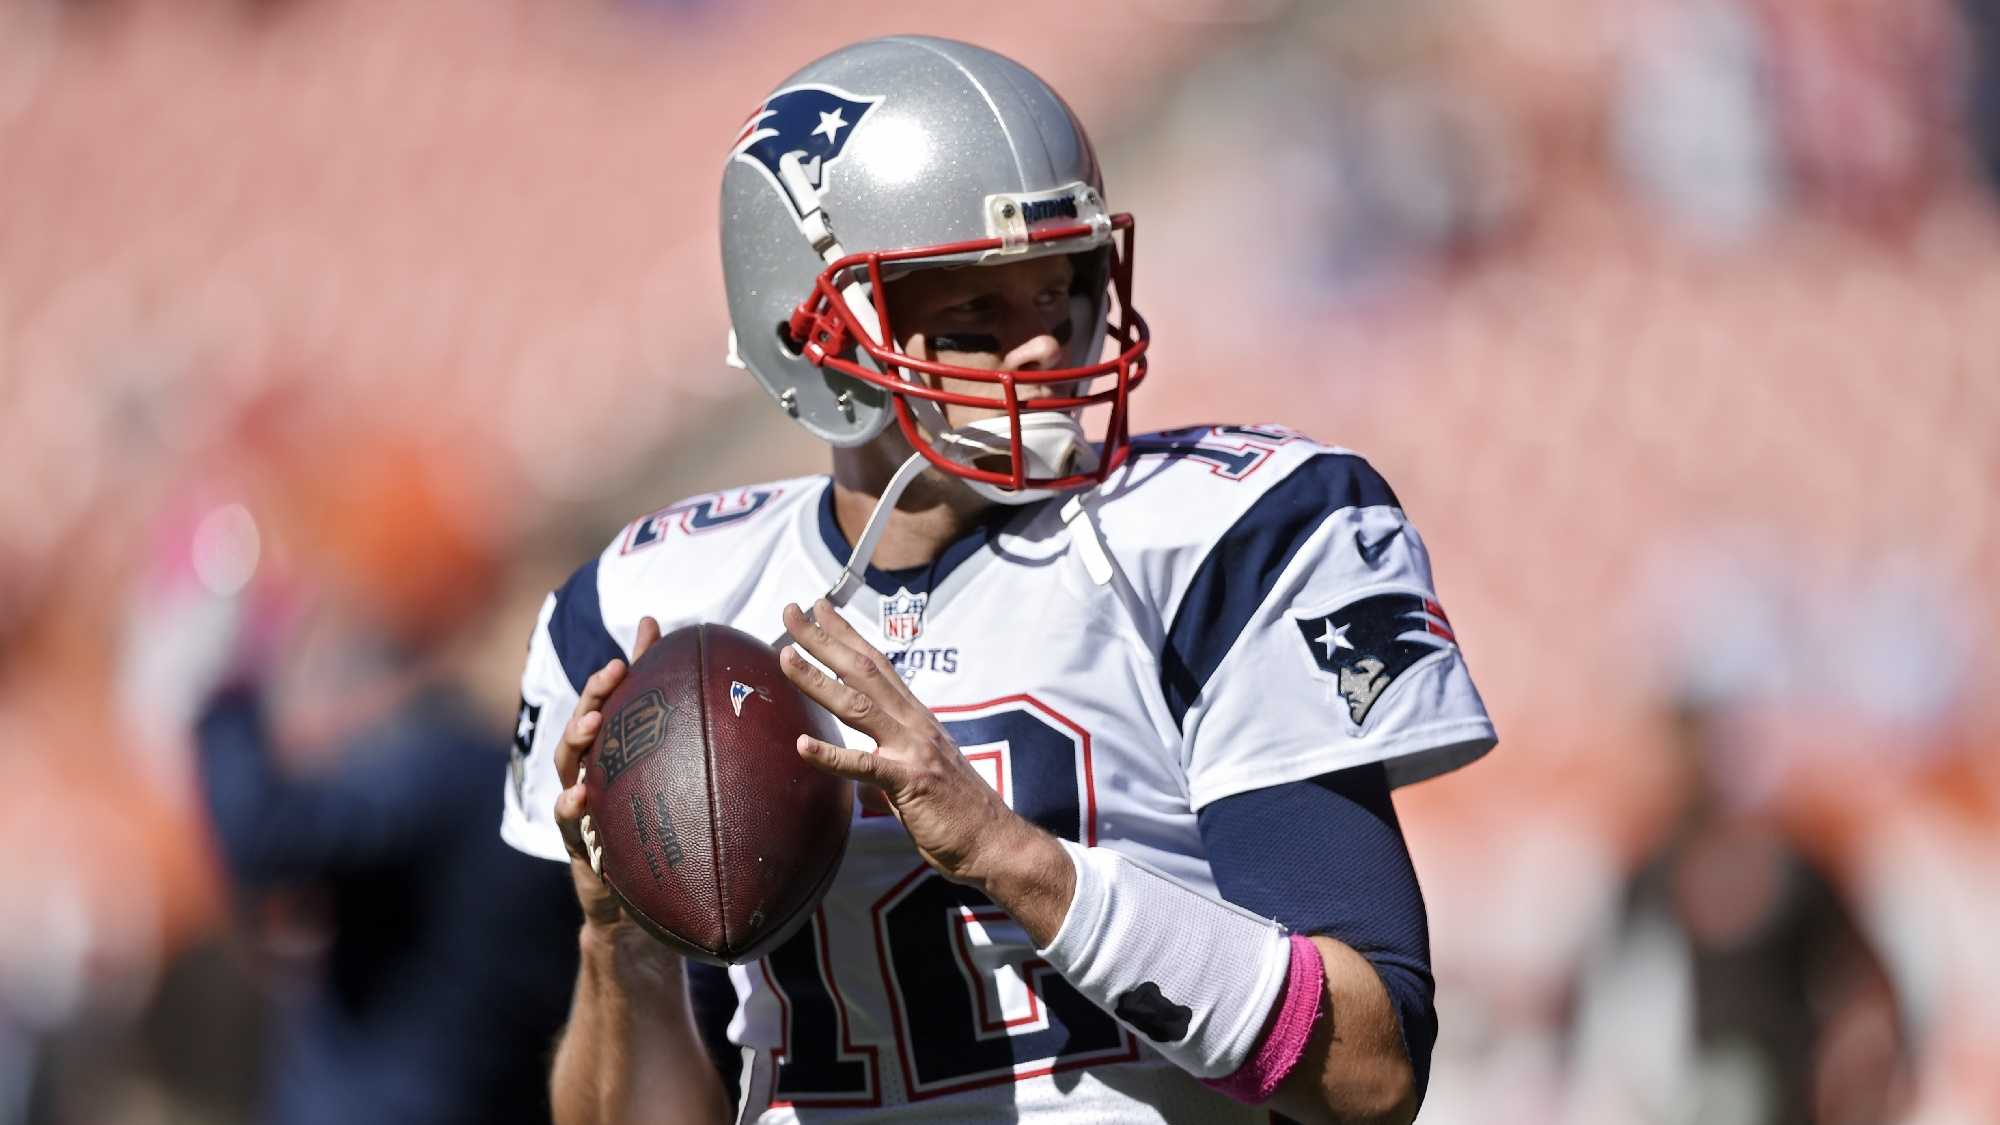 AP Tom Brady passing vs Browns 1009.jpg